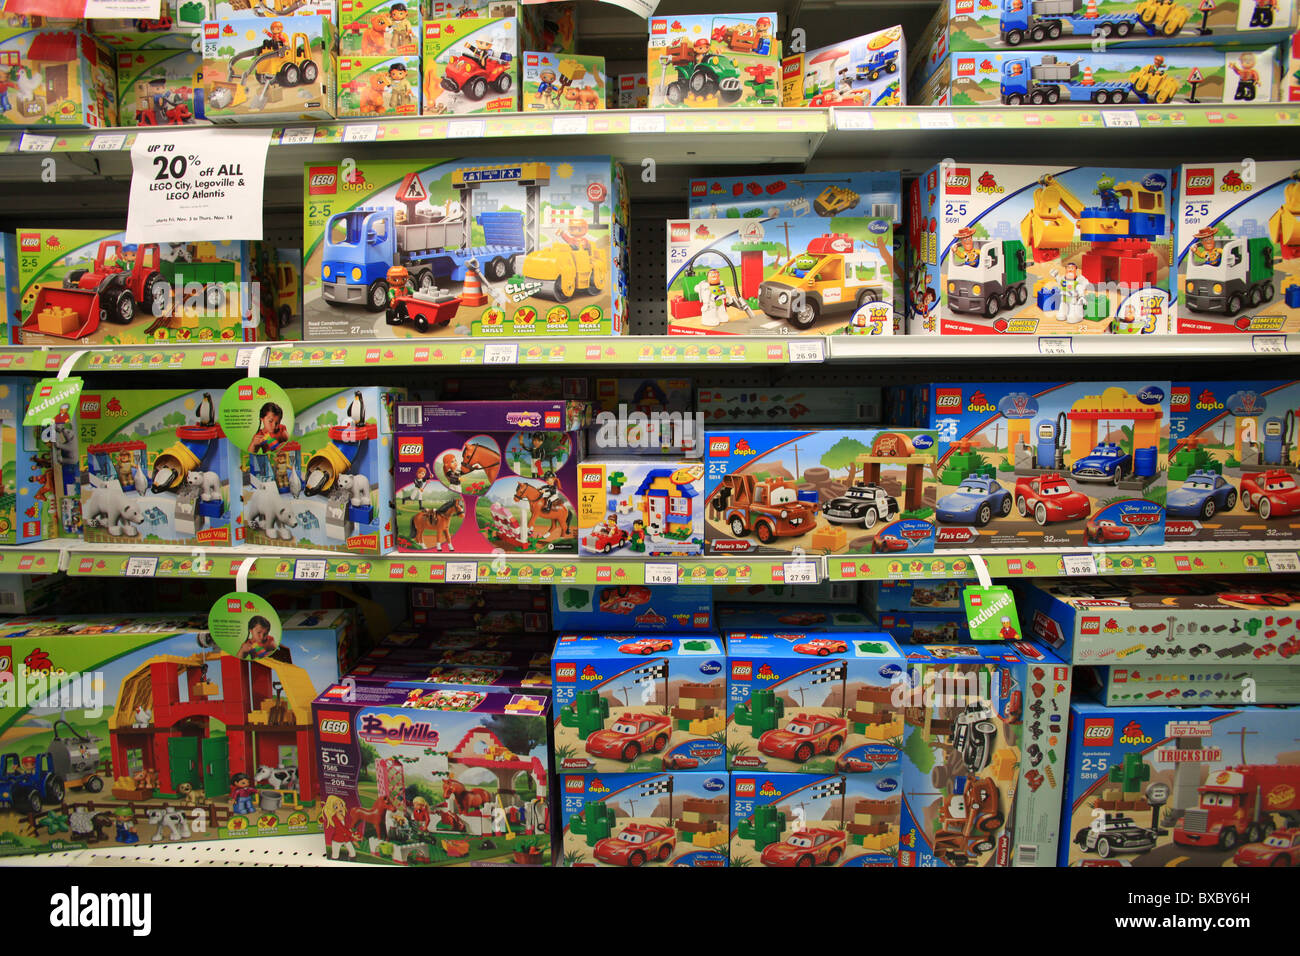 Toys On Sale Stock Photos Toys On Sale Stock Images Alamy - Babies r us gulf coast town center